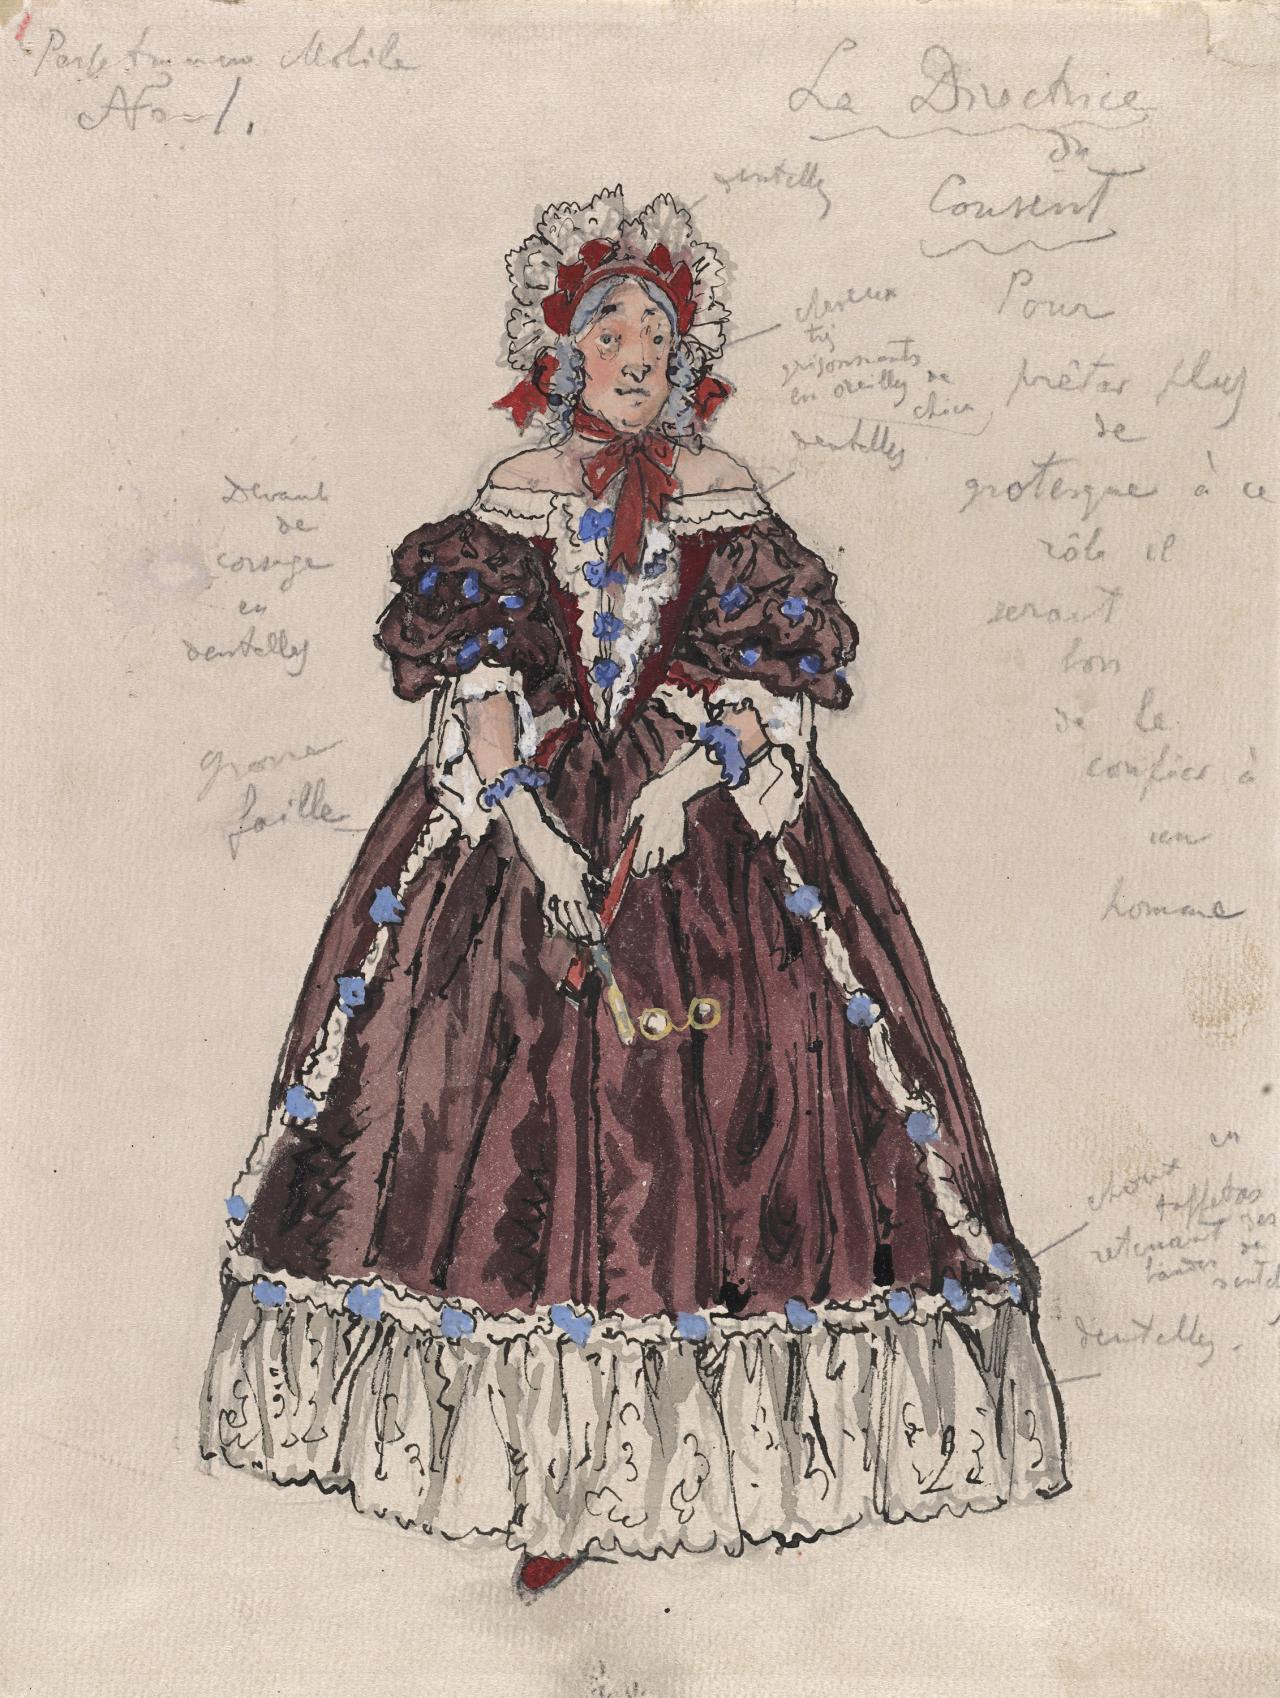 Costume design for the Directress of the Convent